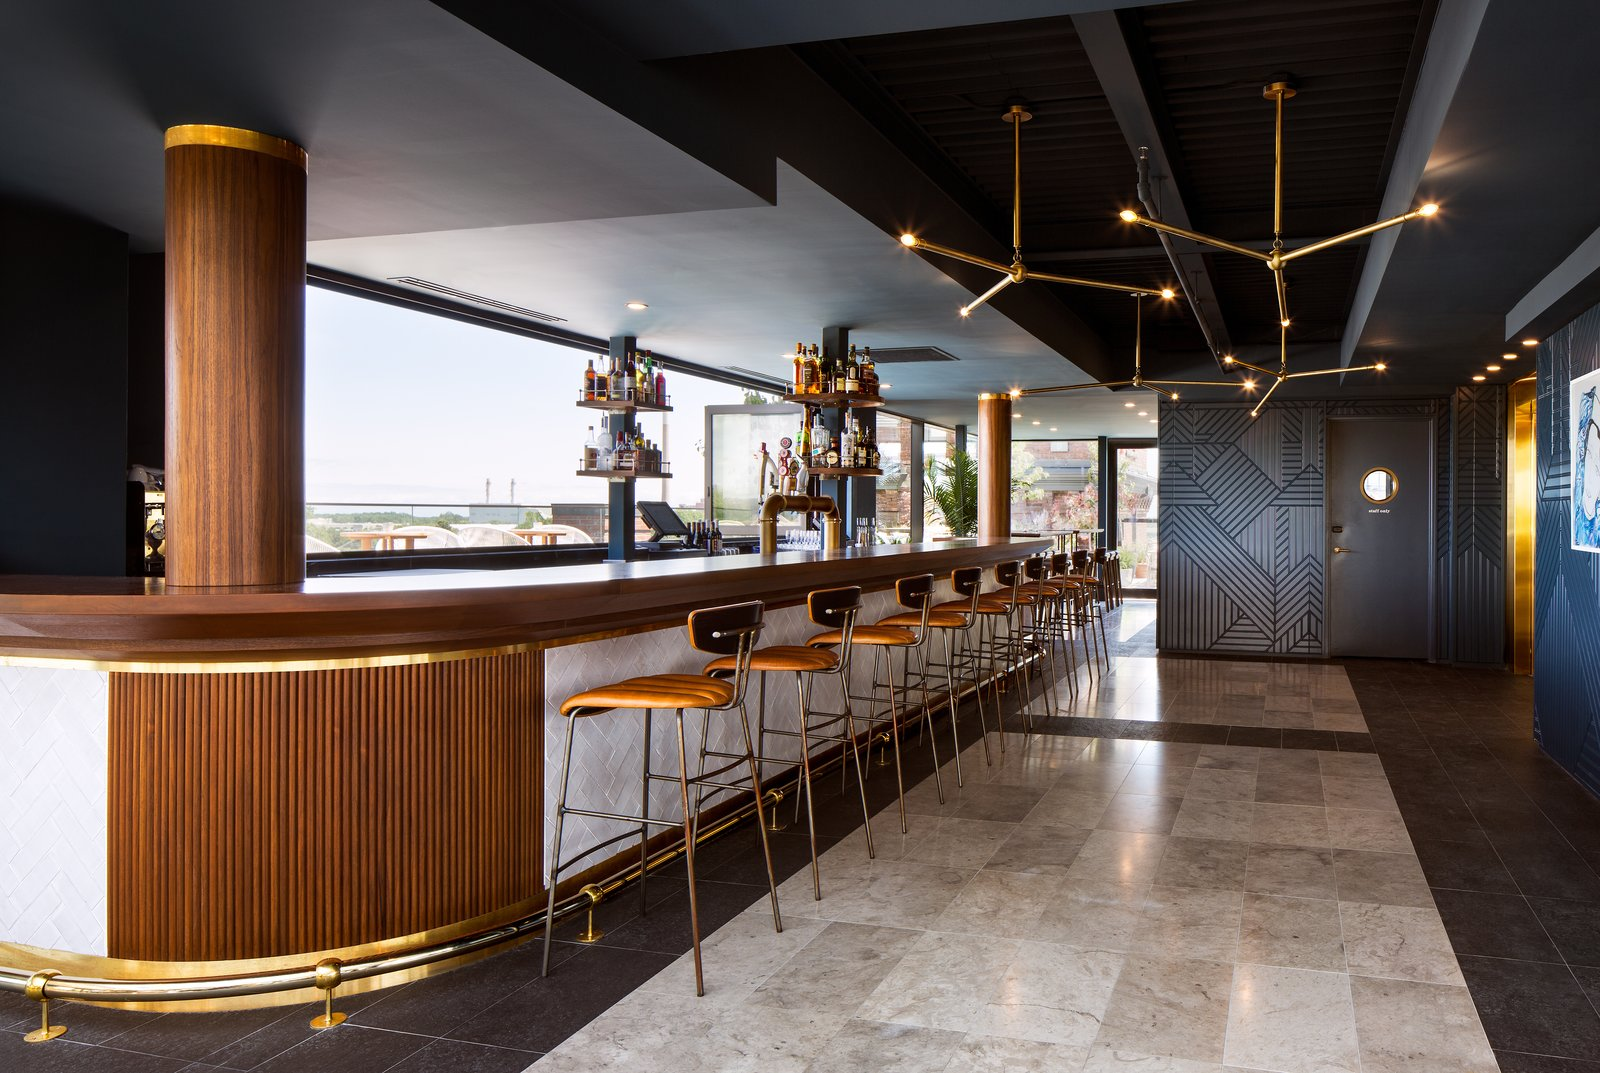 A Former Strip Club Transforms Into a Snazzy Boutique Hotel